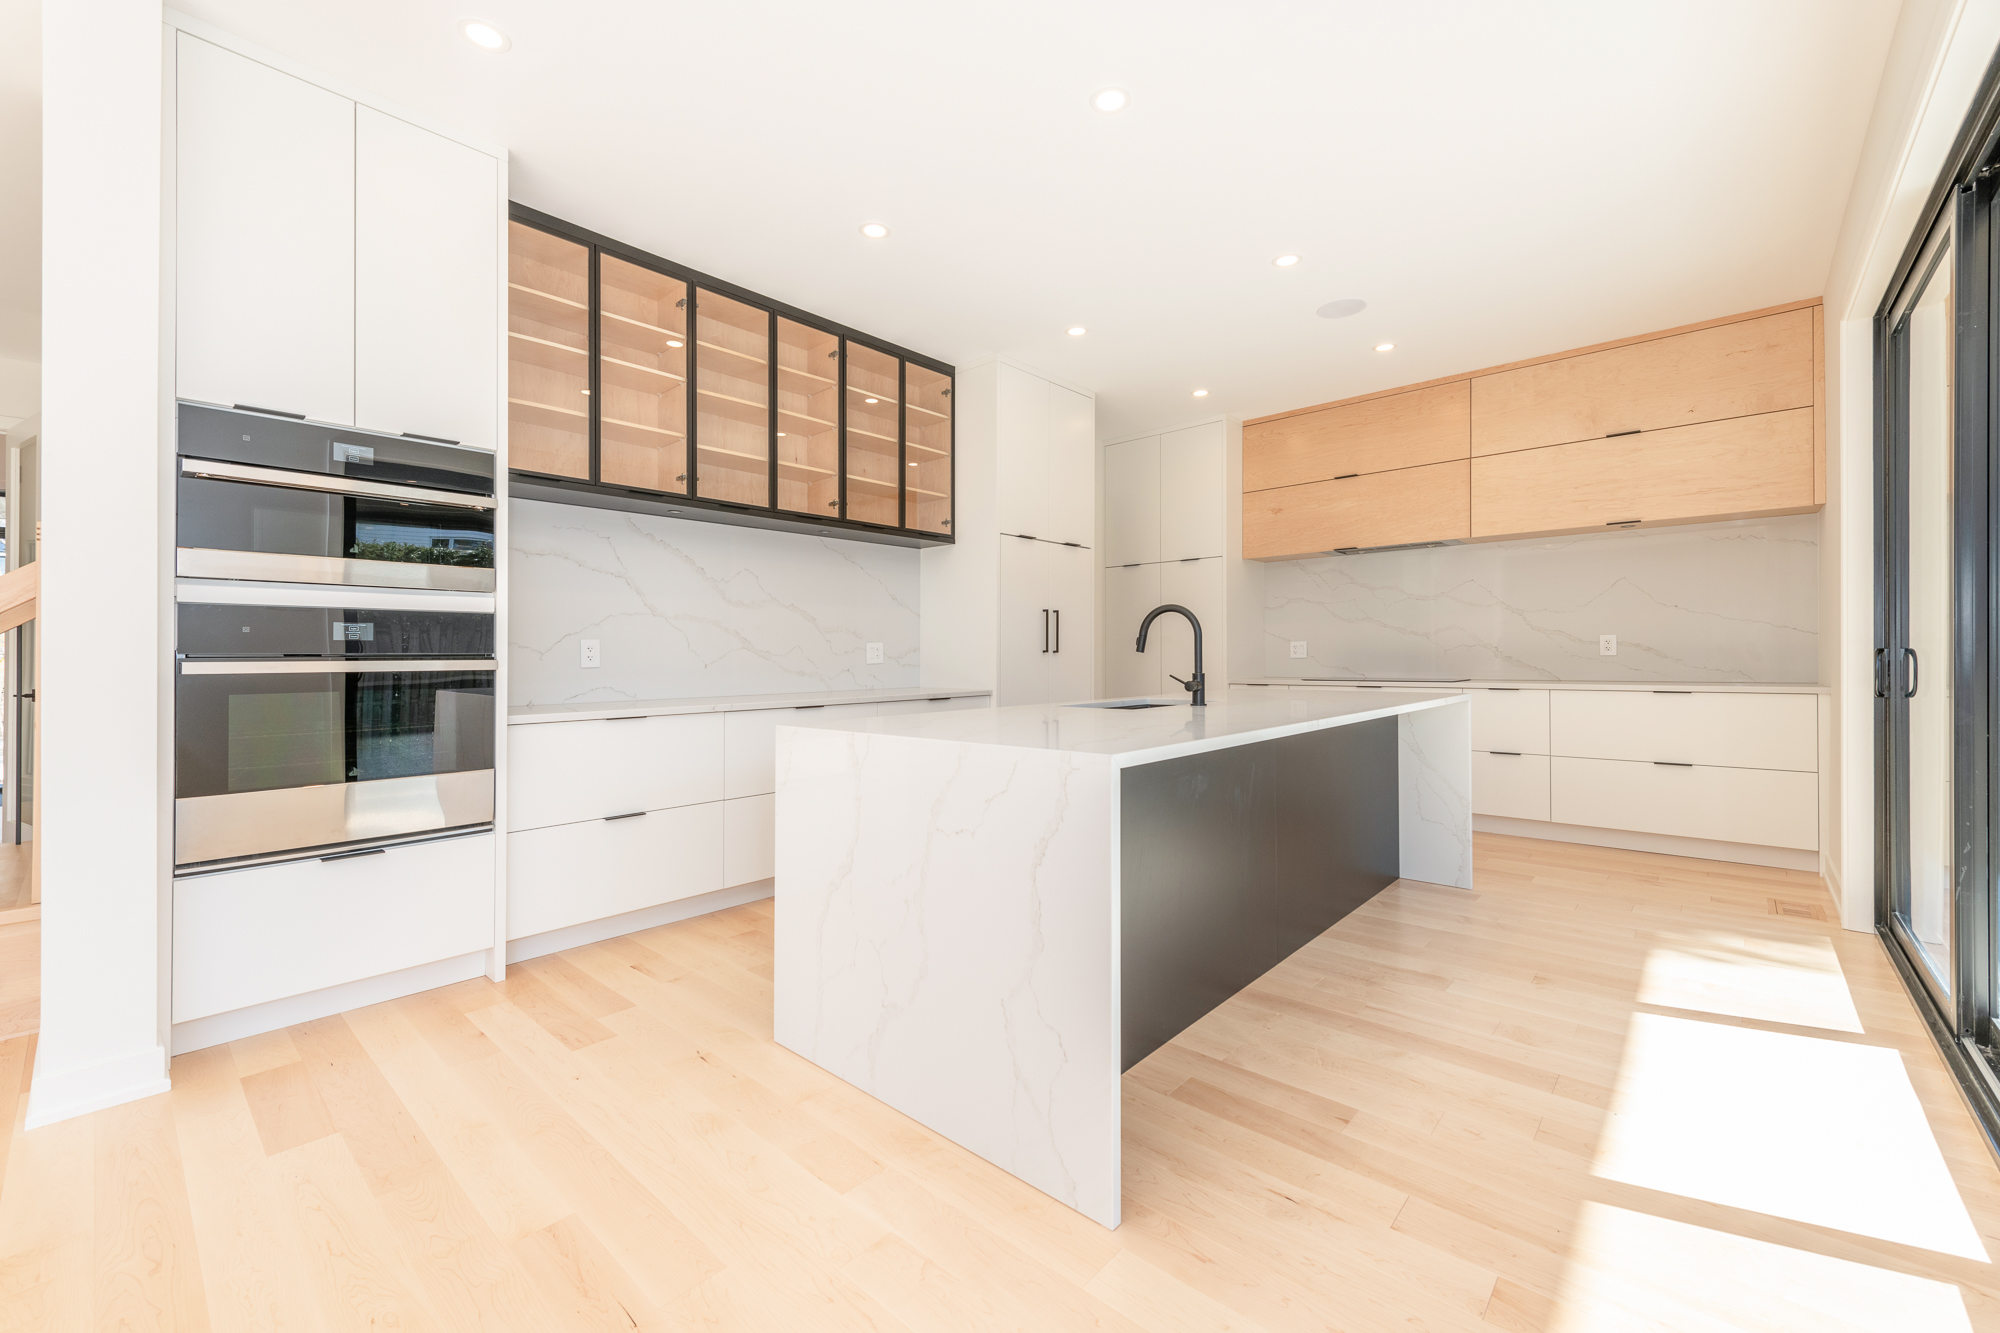 A brand-new kitchen by Deslaurier with empty shelving.